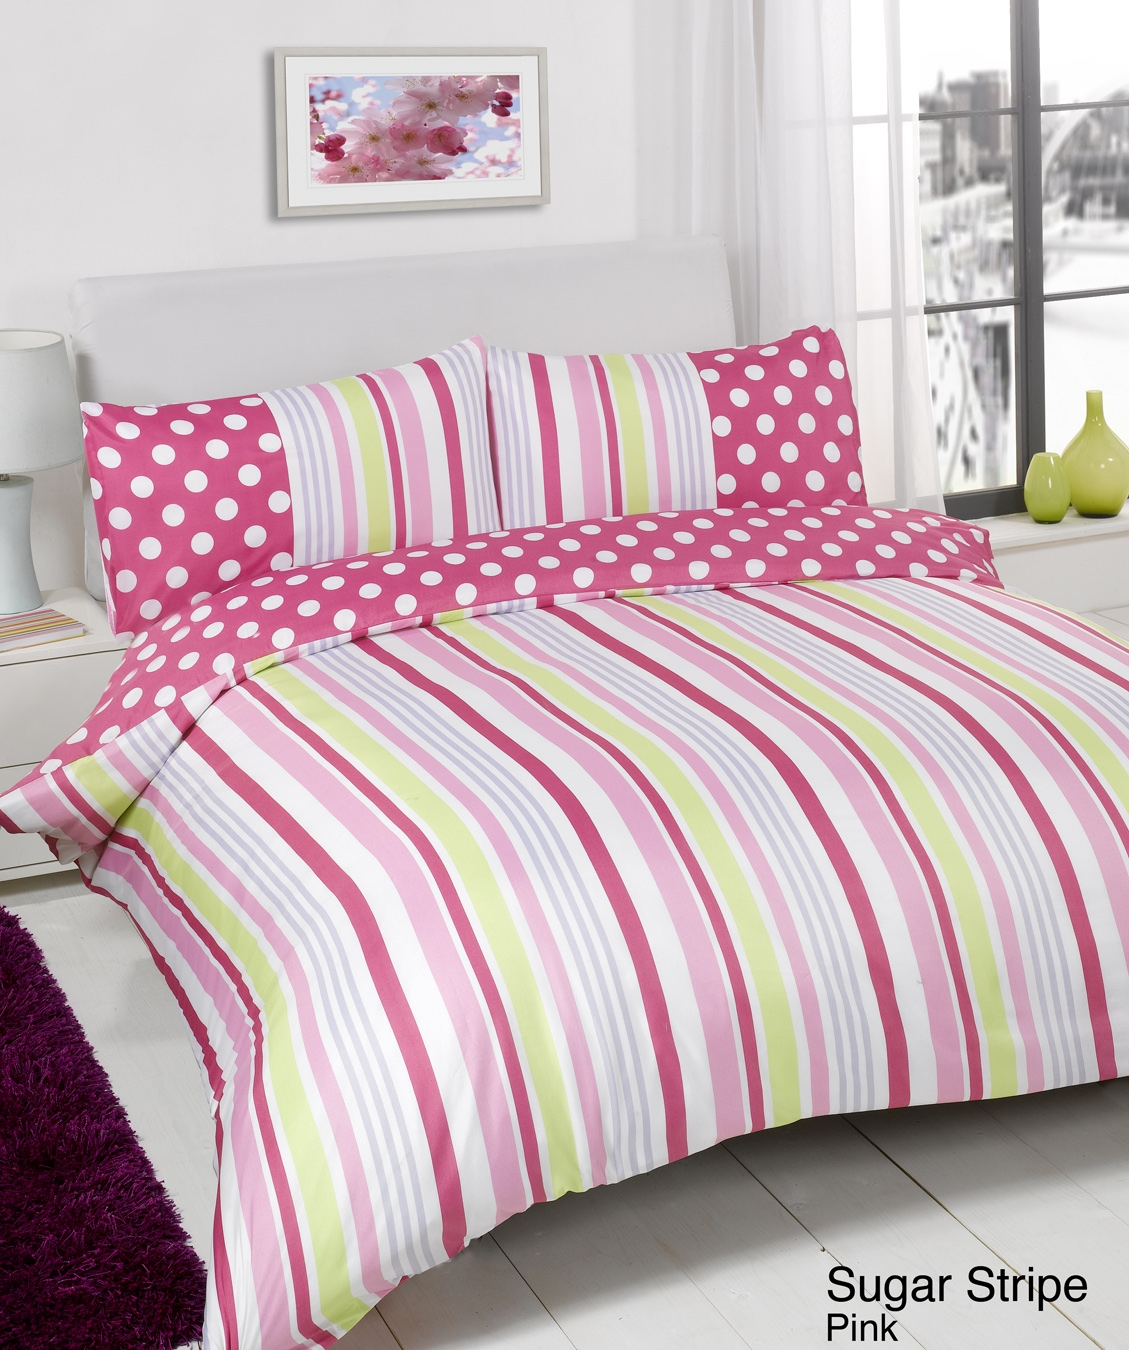 Duvet Cover How to Make a Duvet Cover Assembly Home Marble Duvet Cover How to Keep a Duvet in Place The